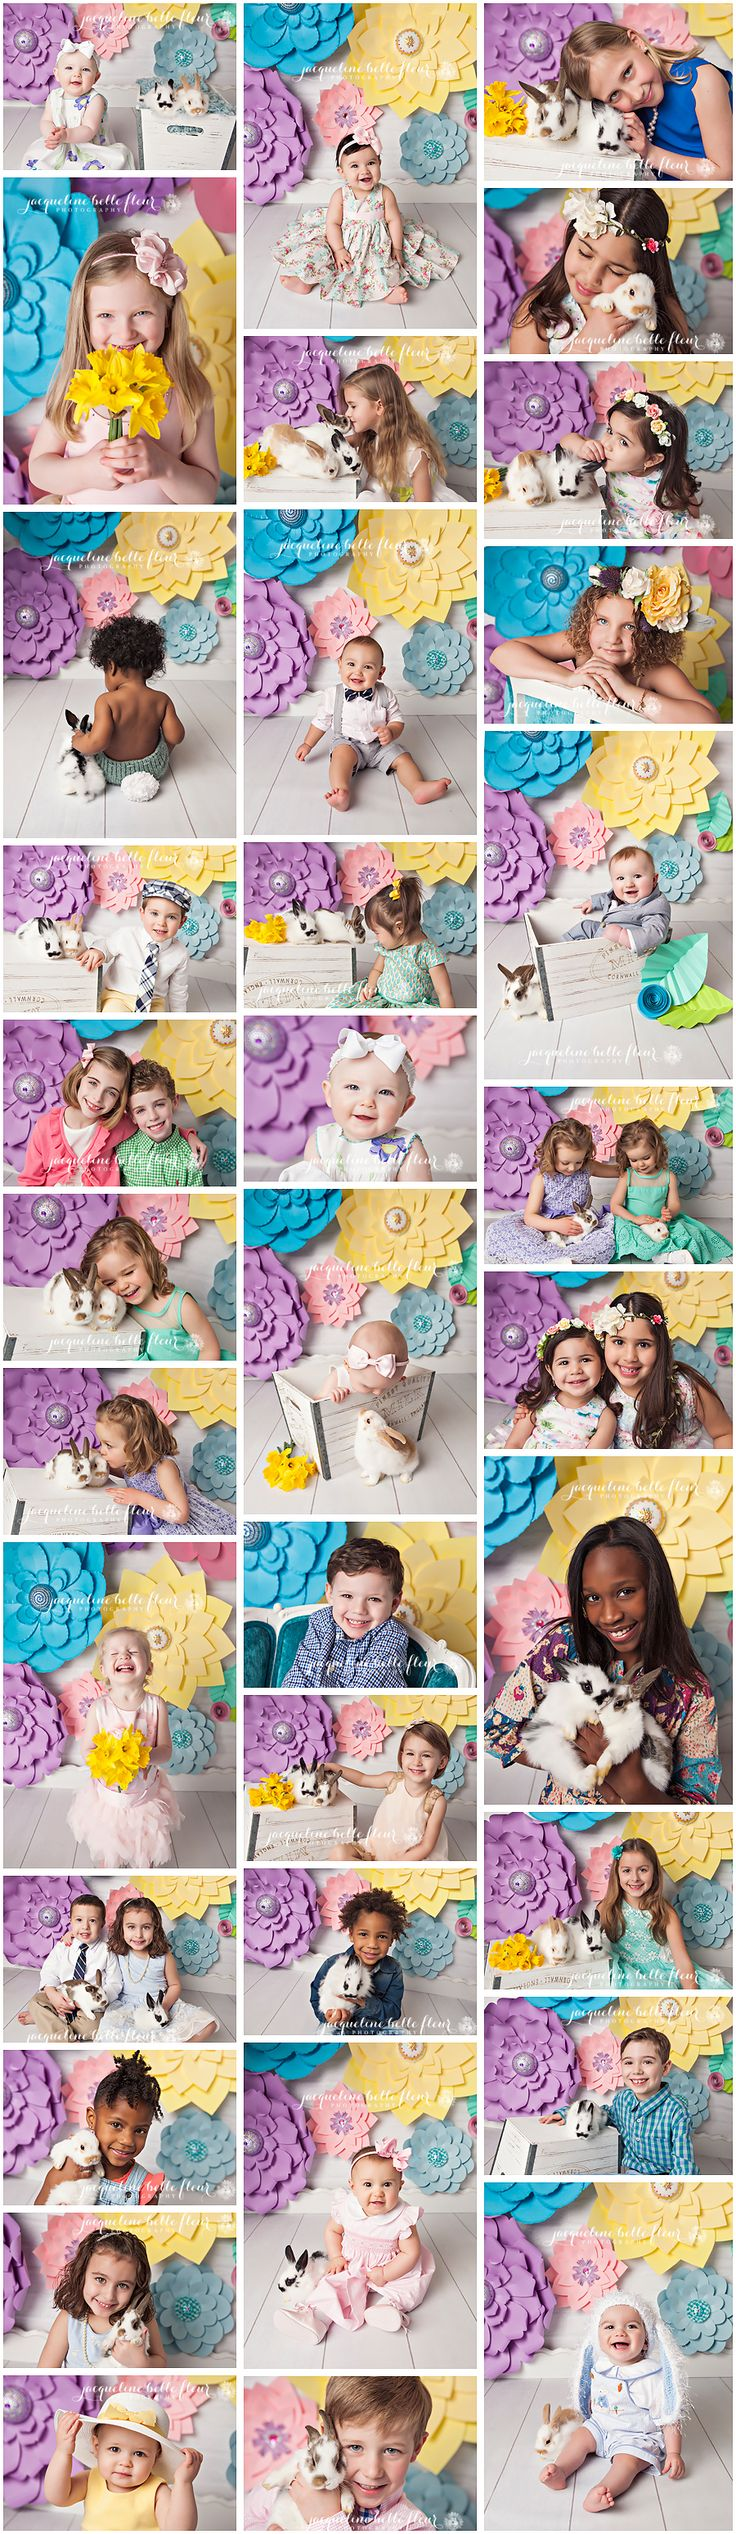 2015 Easter Mini Sessions with Live Bunnies for Children